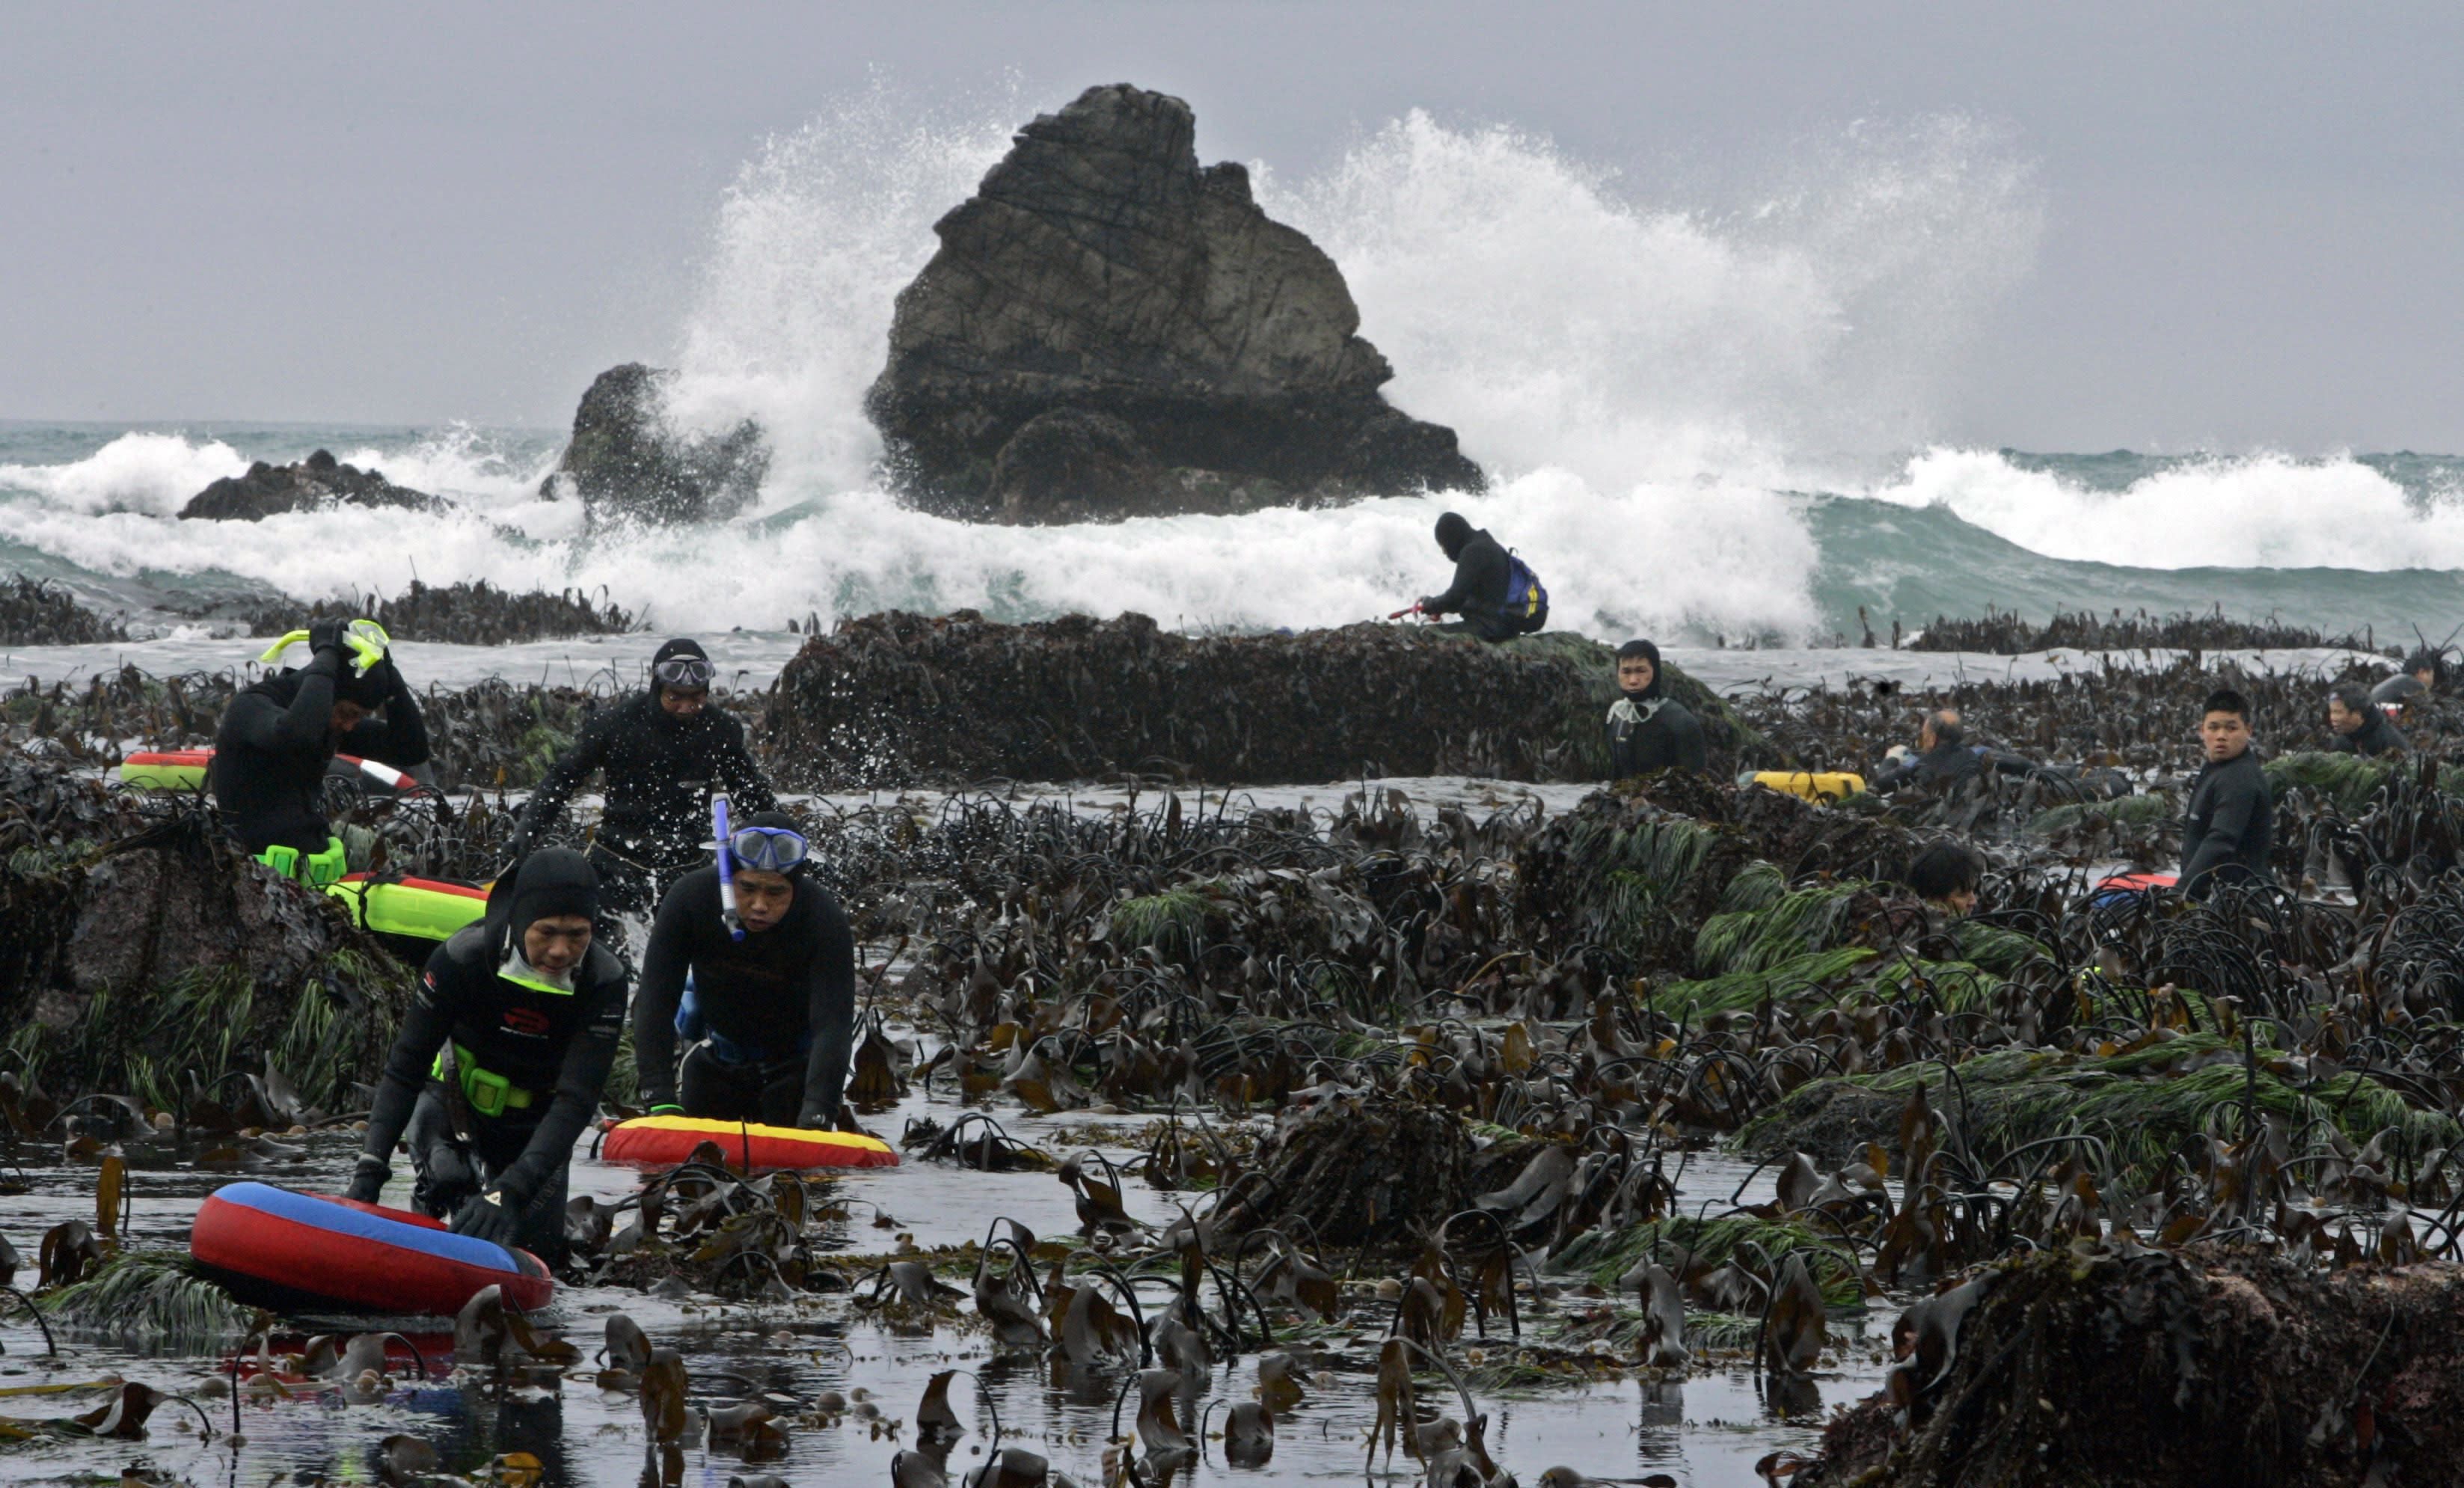 Body of abalone diver found along Northern California coast